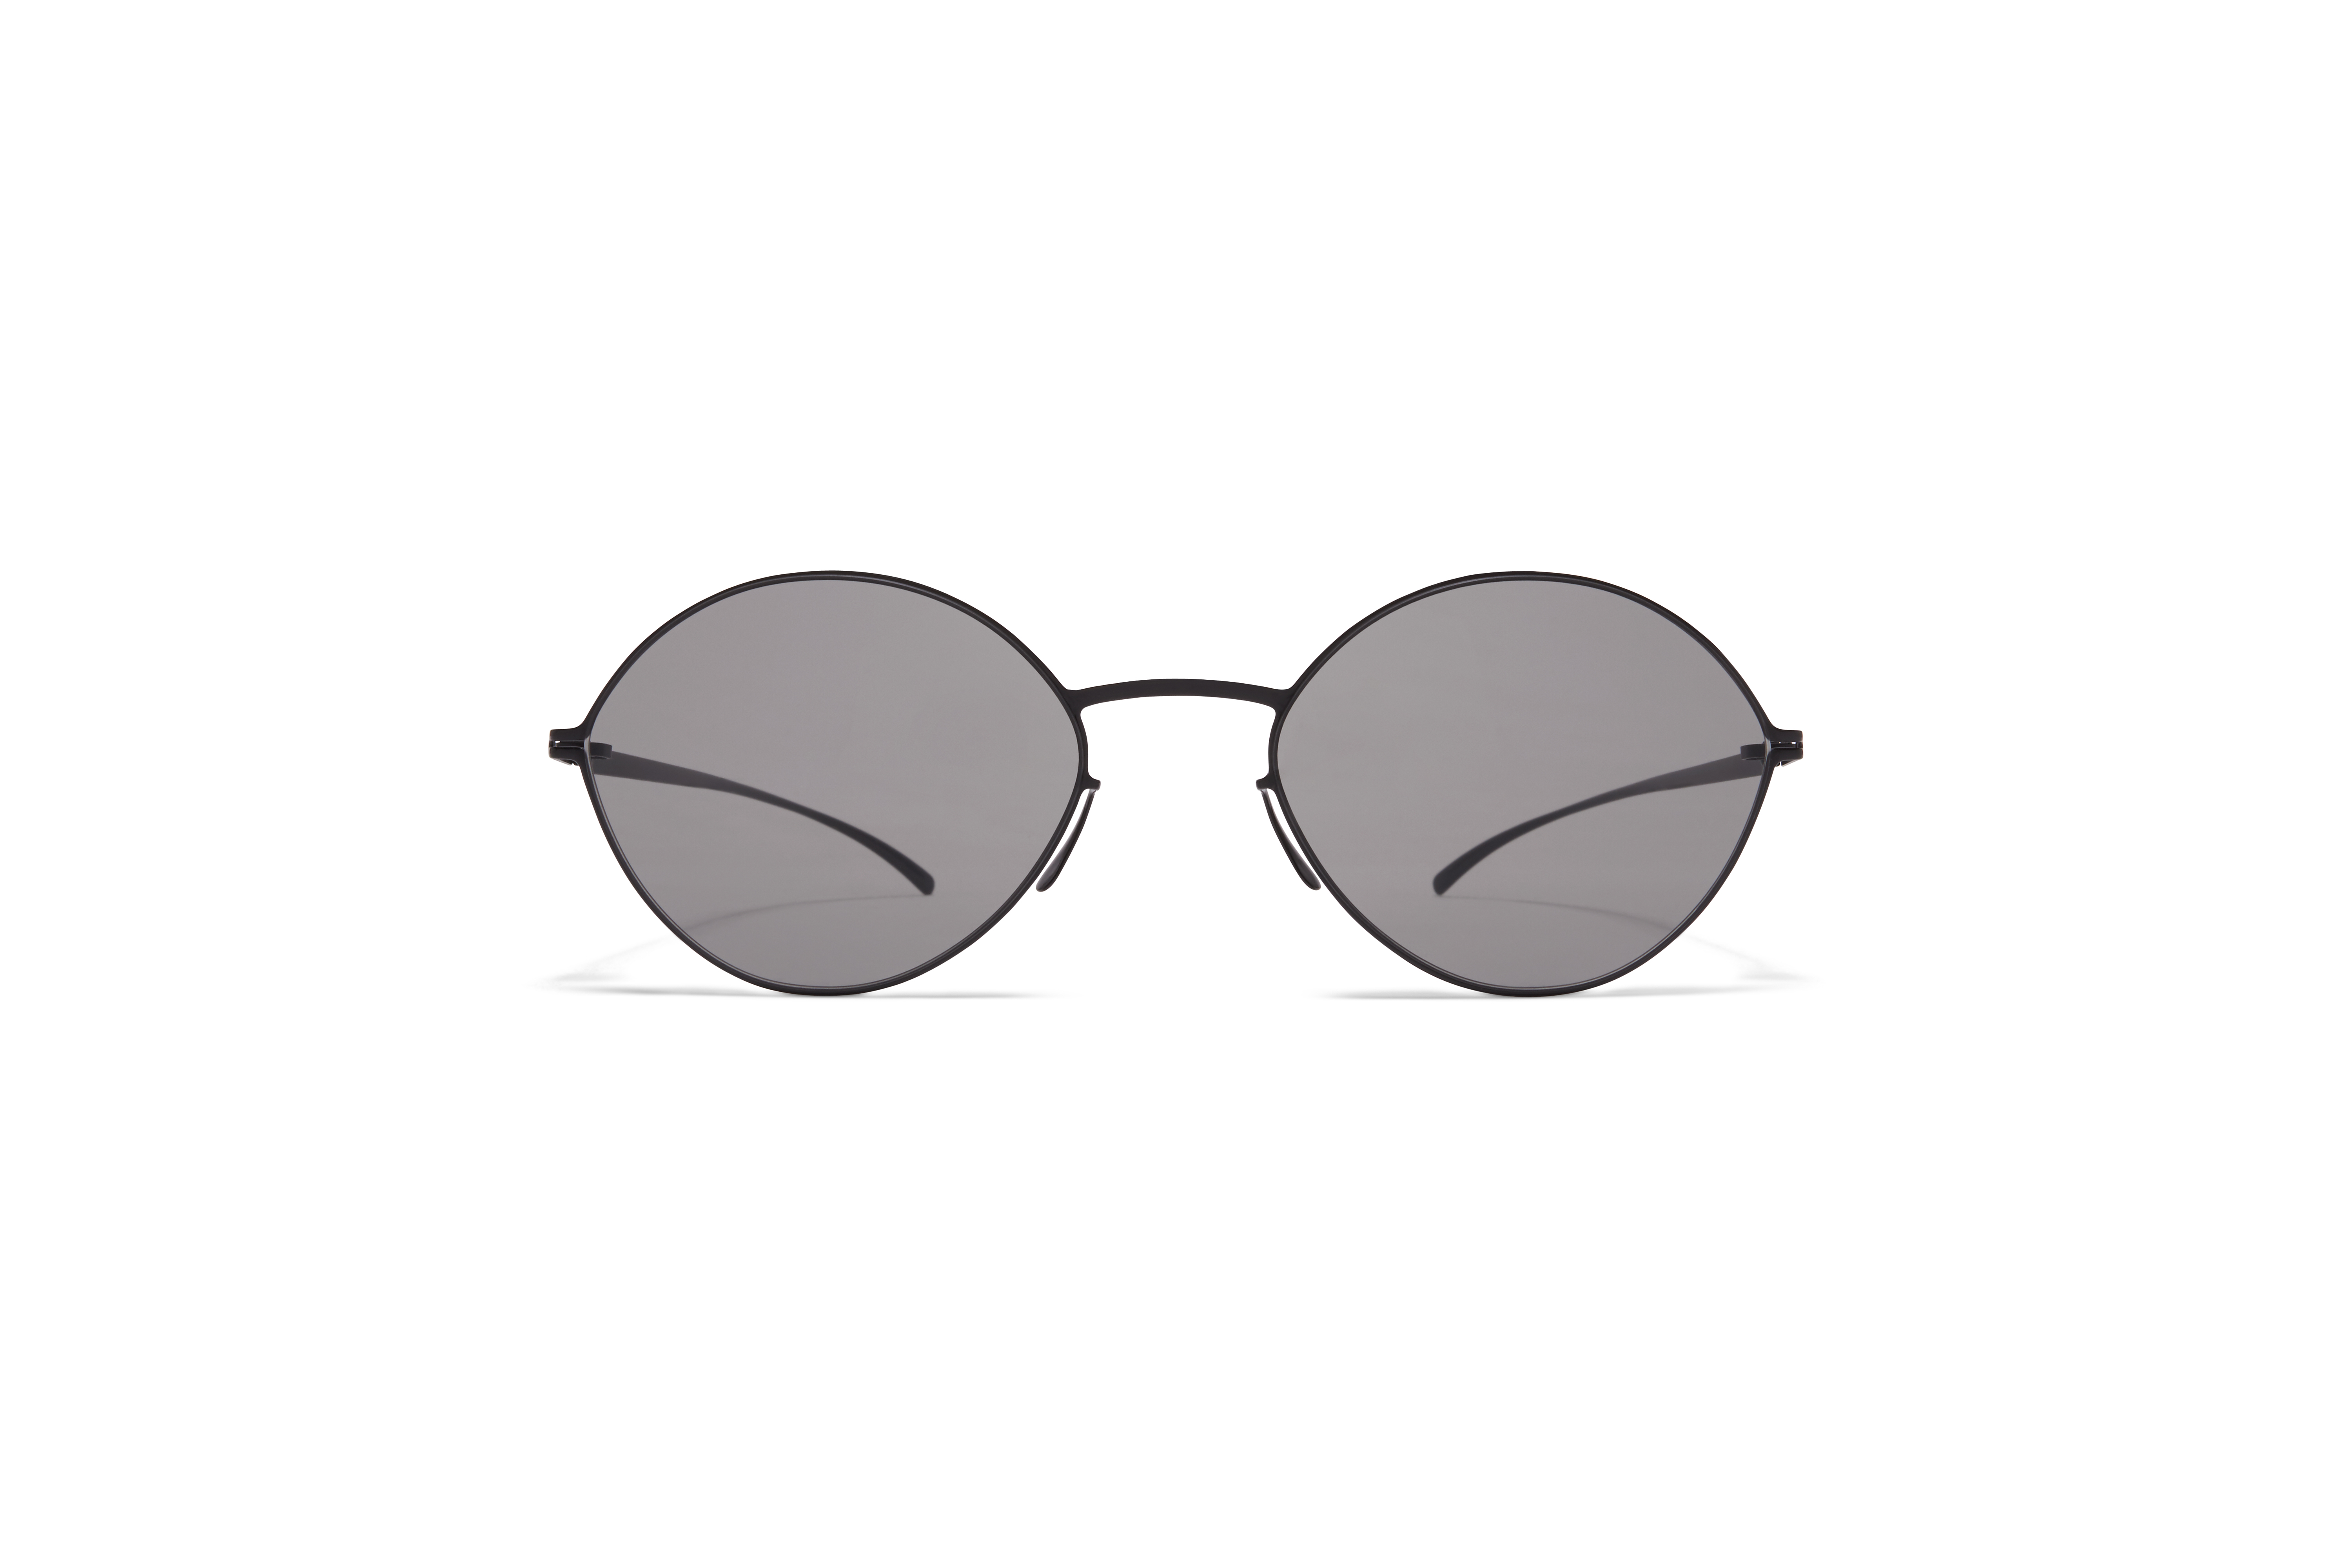 MYKITA Mm Sun Mmesse020 E4 Black Grey Solid